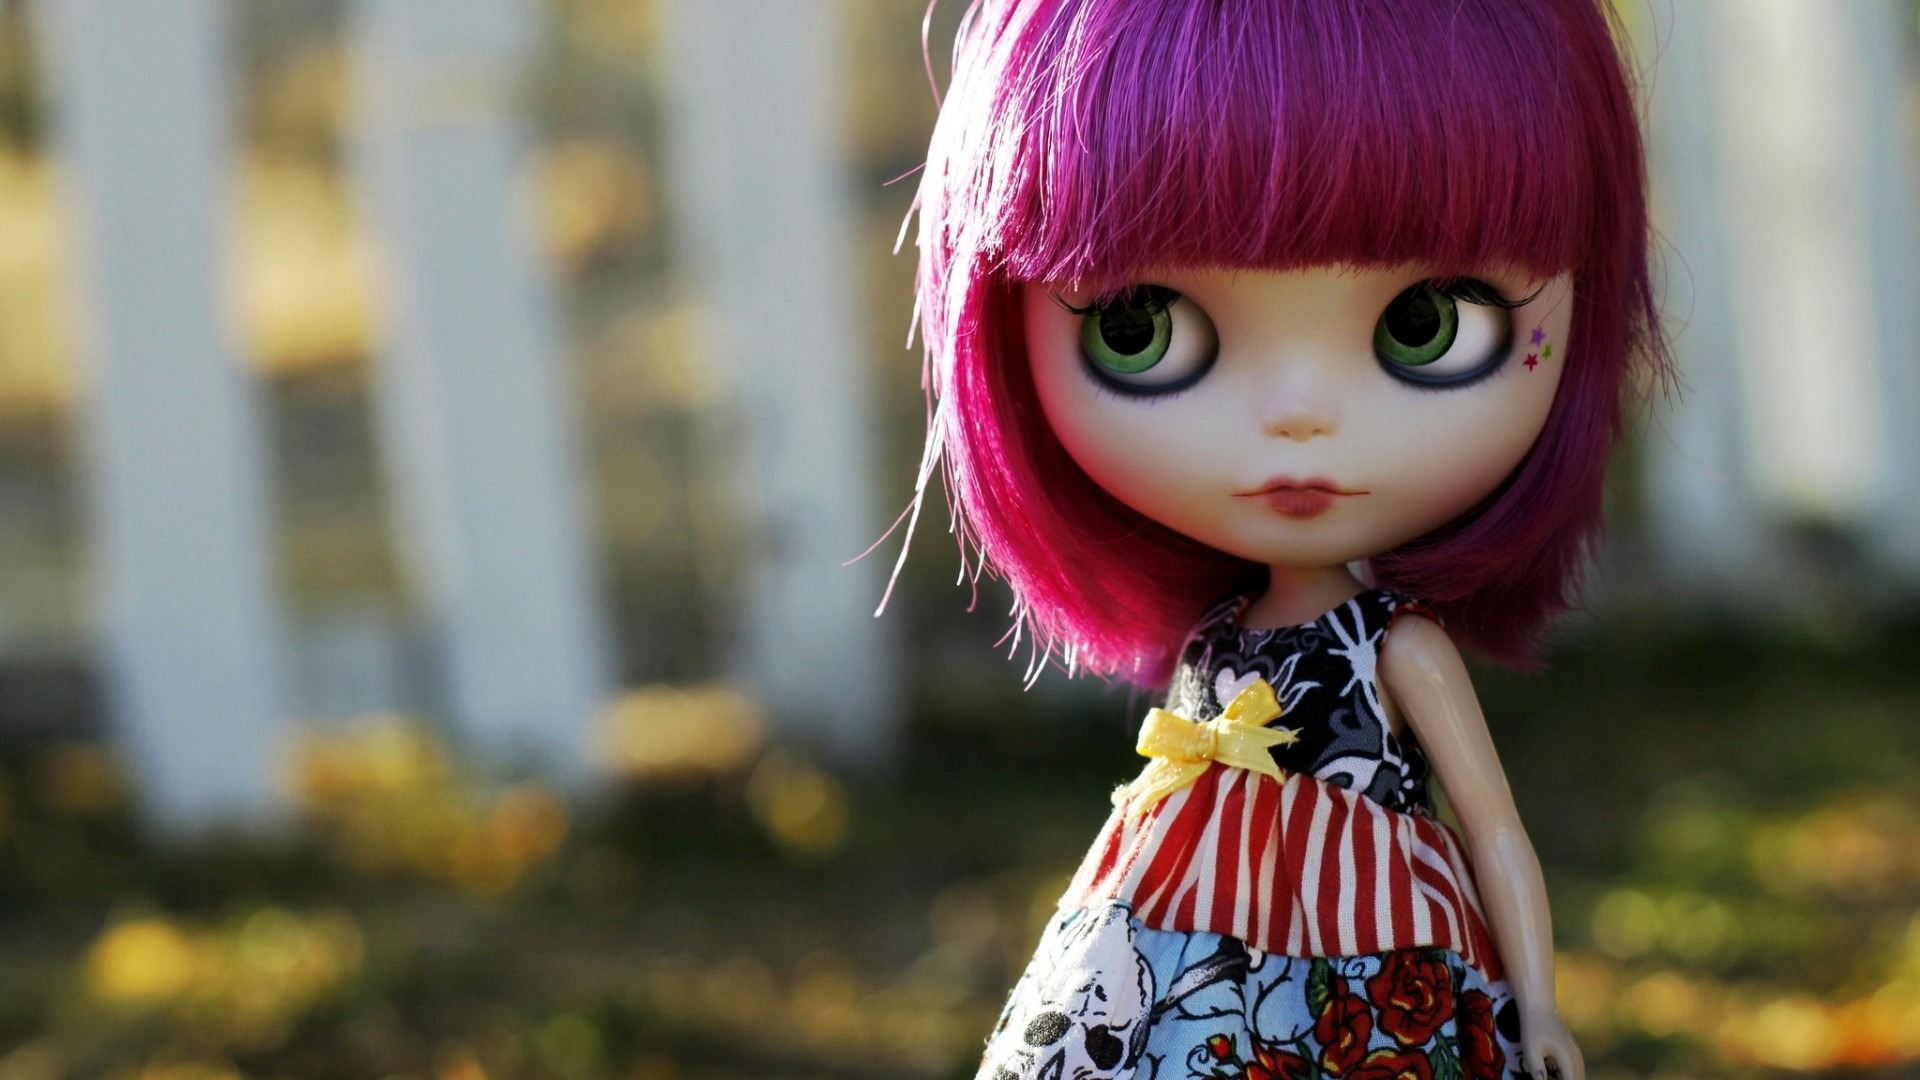 Doll-Mauhhhfhgfve-1080p-HD-Lock-Screen-wallpaper-wp3404738